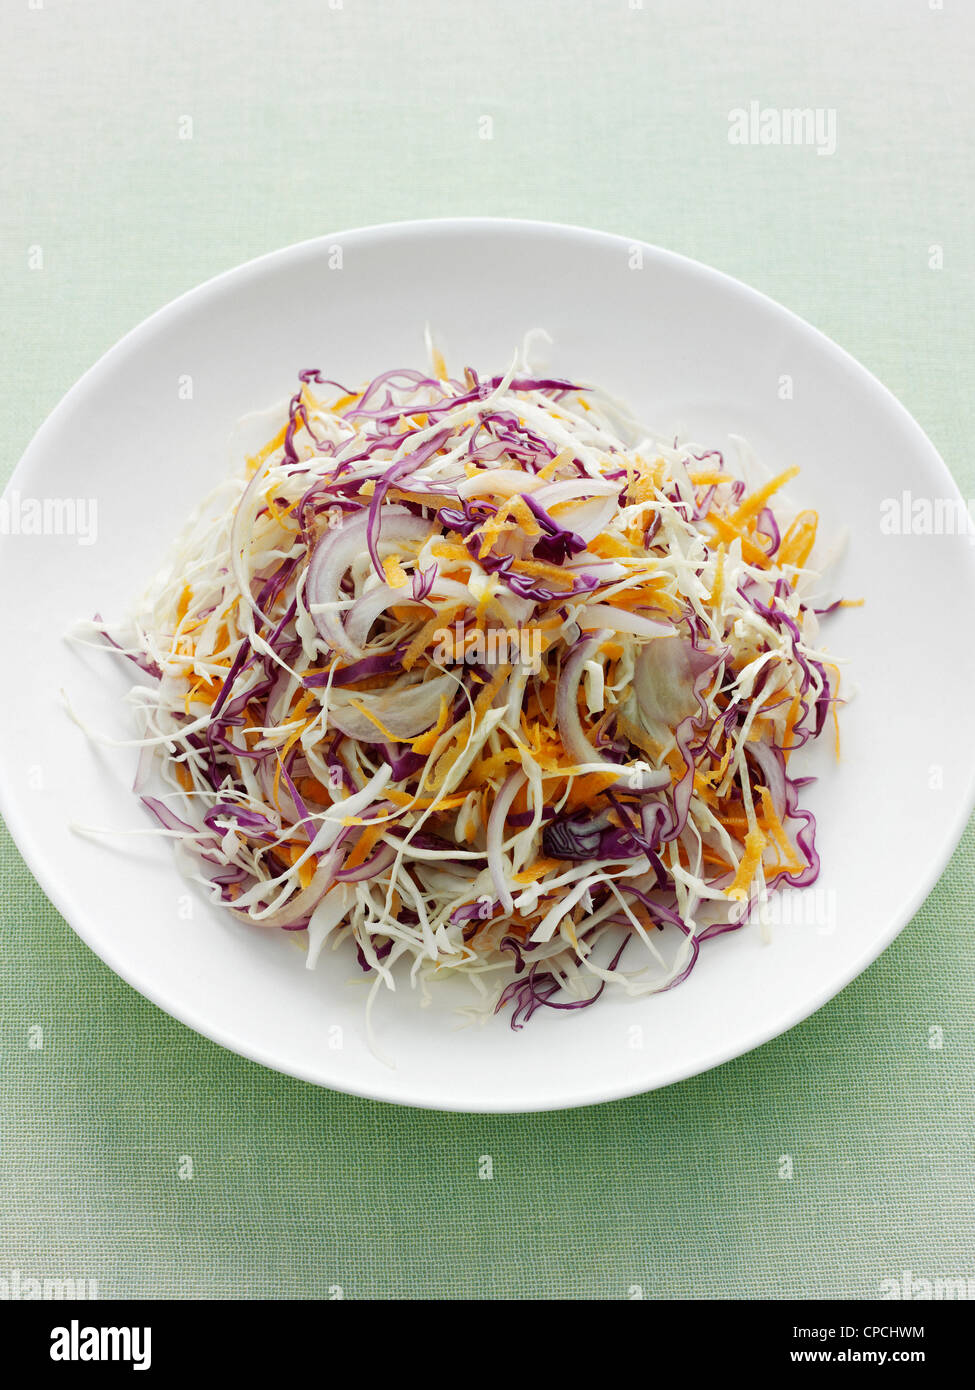 Plate of shredded cabbage and carrot - Stock Image